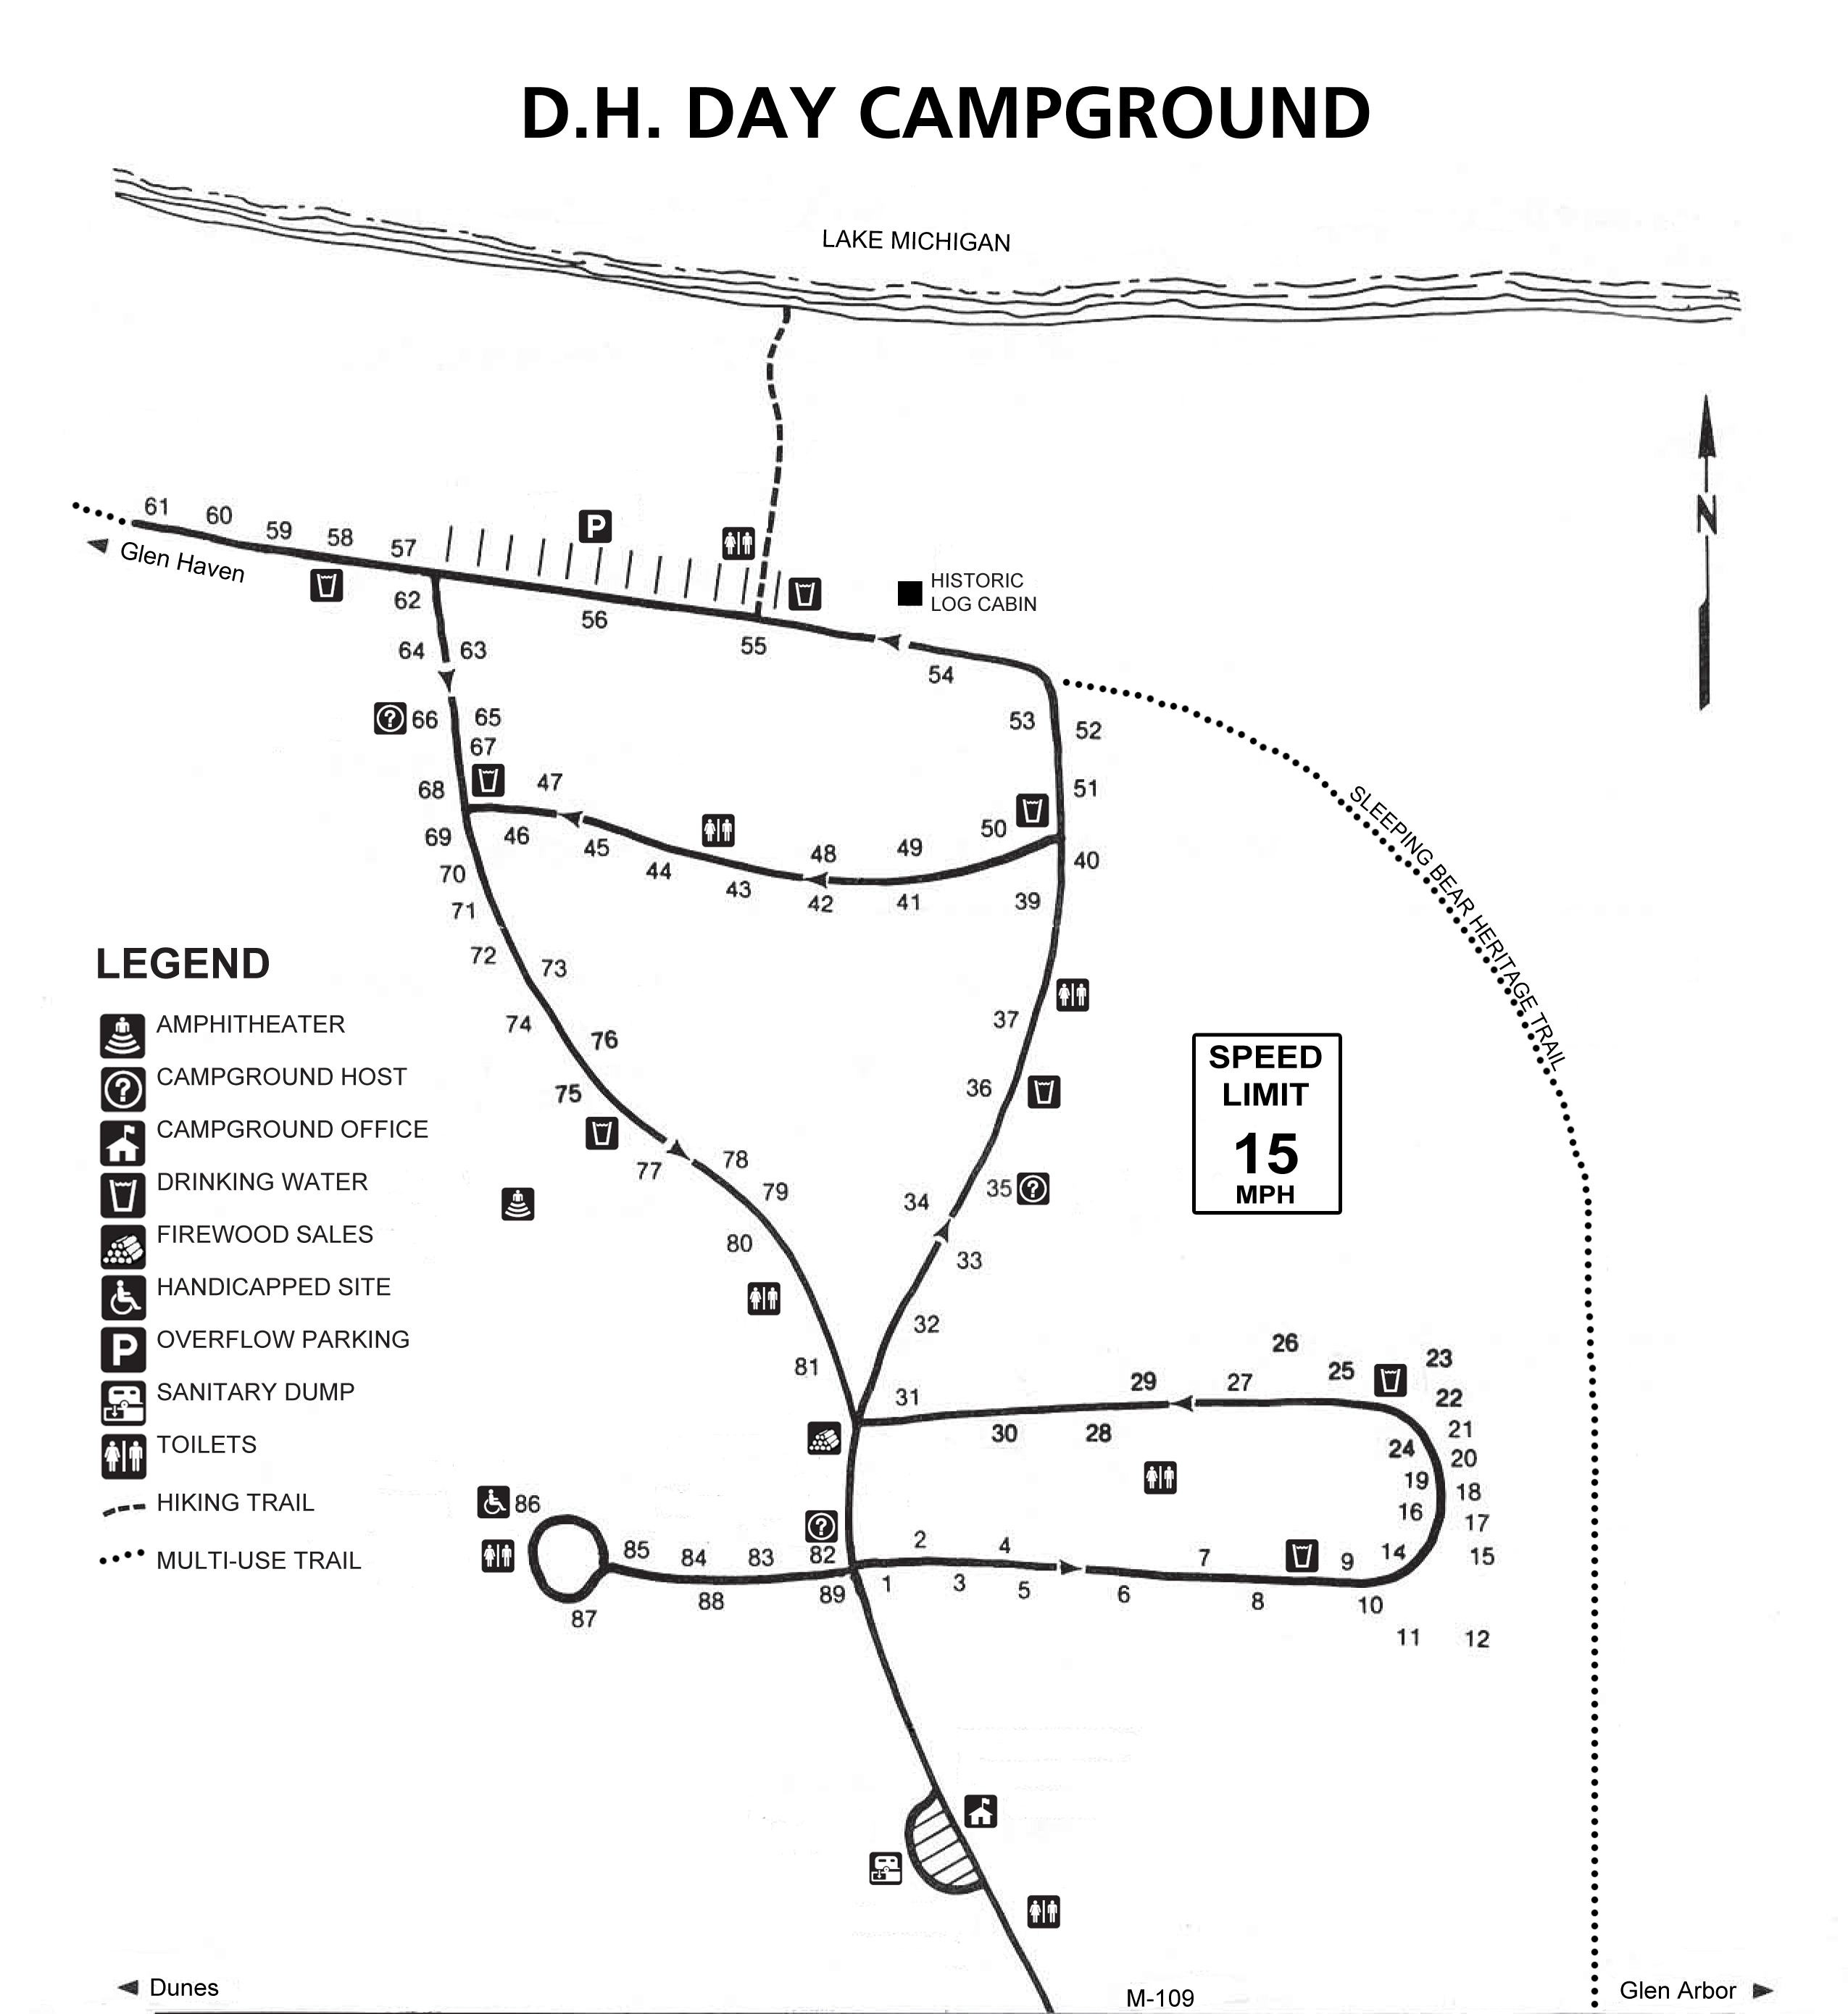 Map of DH Day Campground